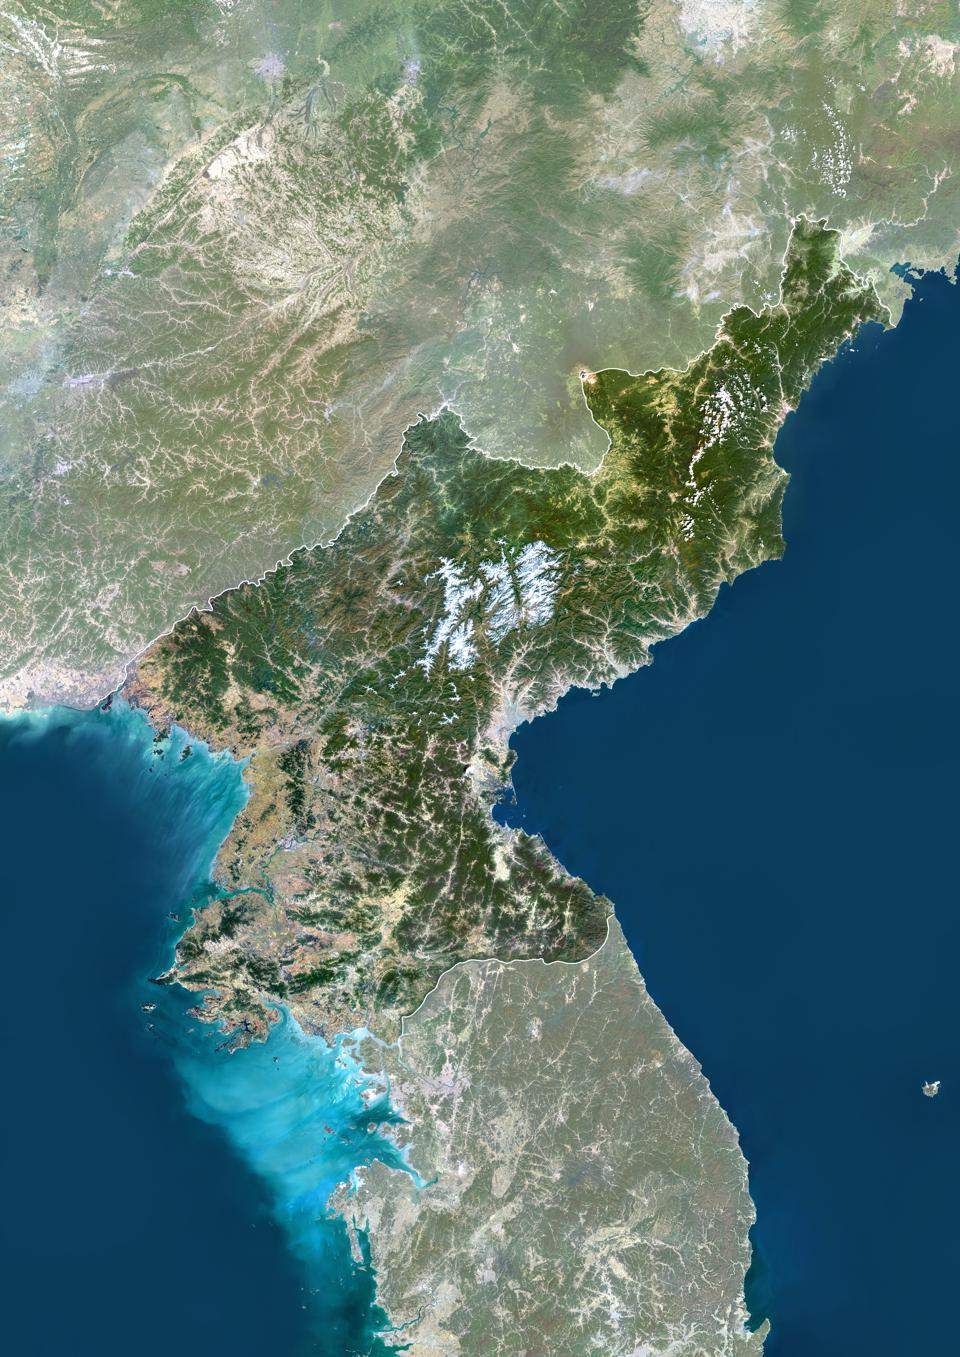 North Korea, Asia, True Colour Satellite Image With Border And Mask